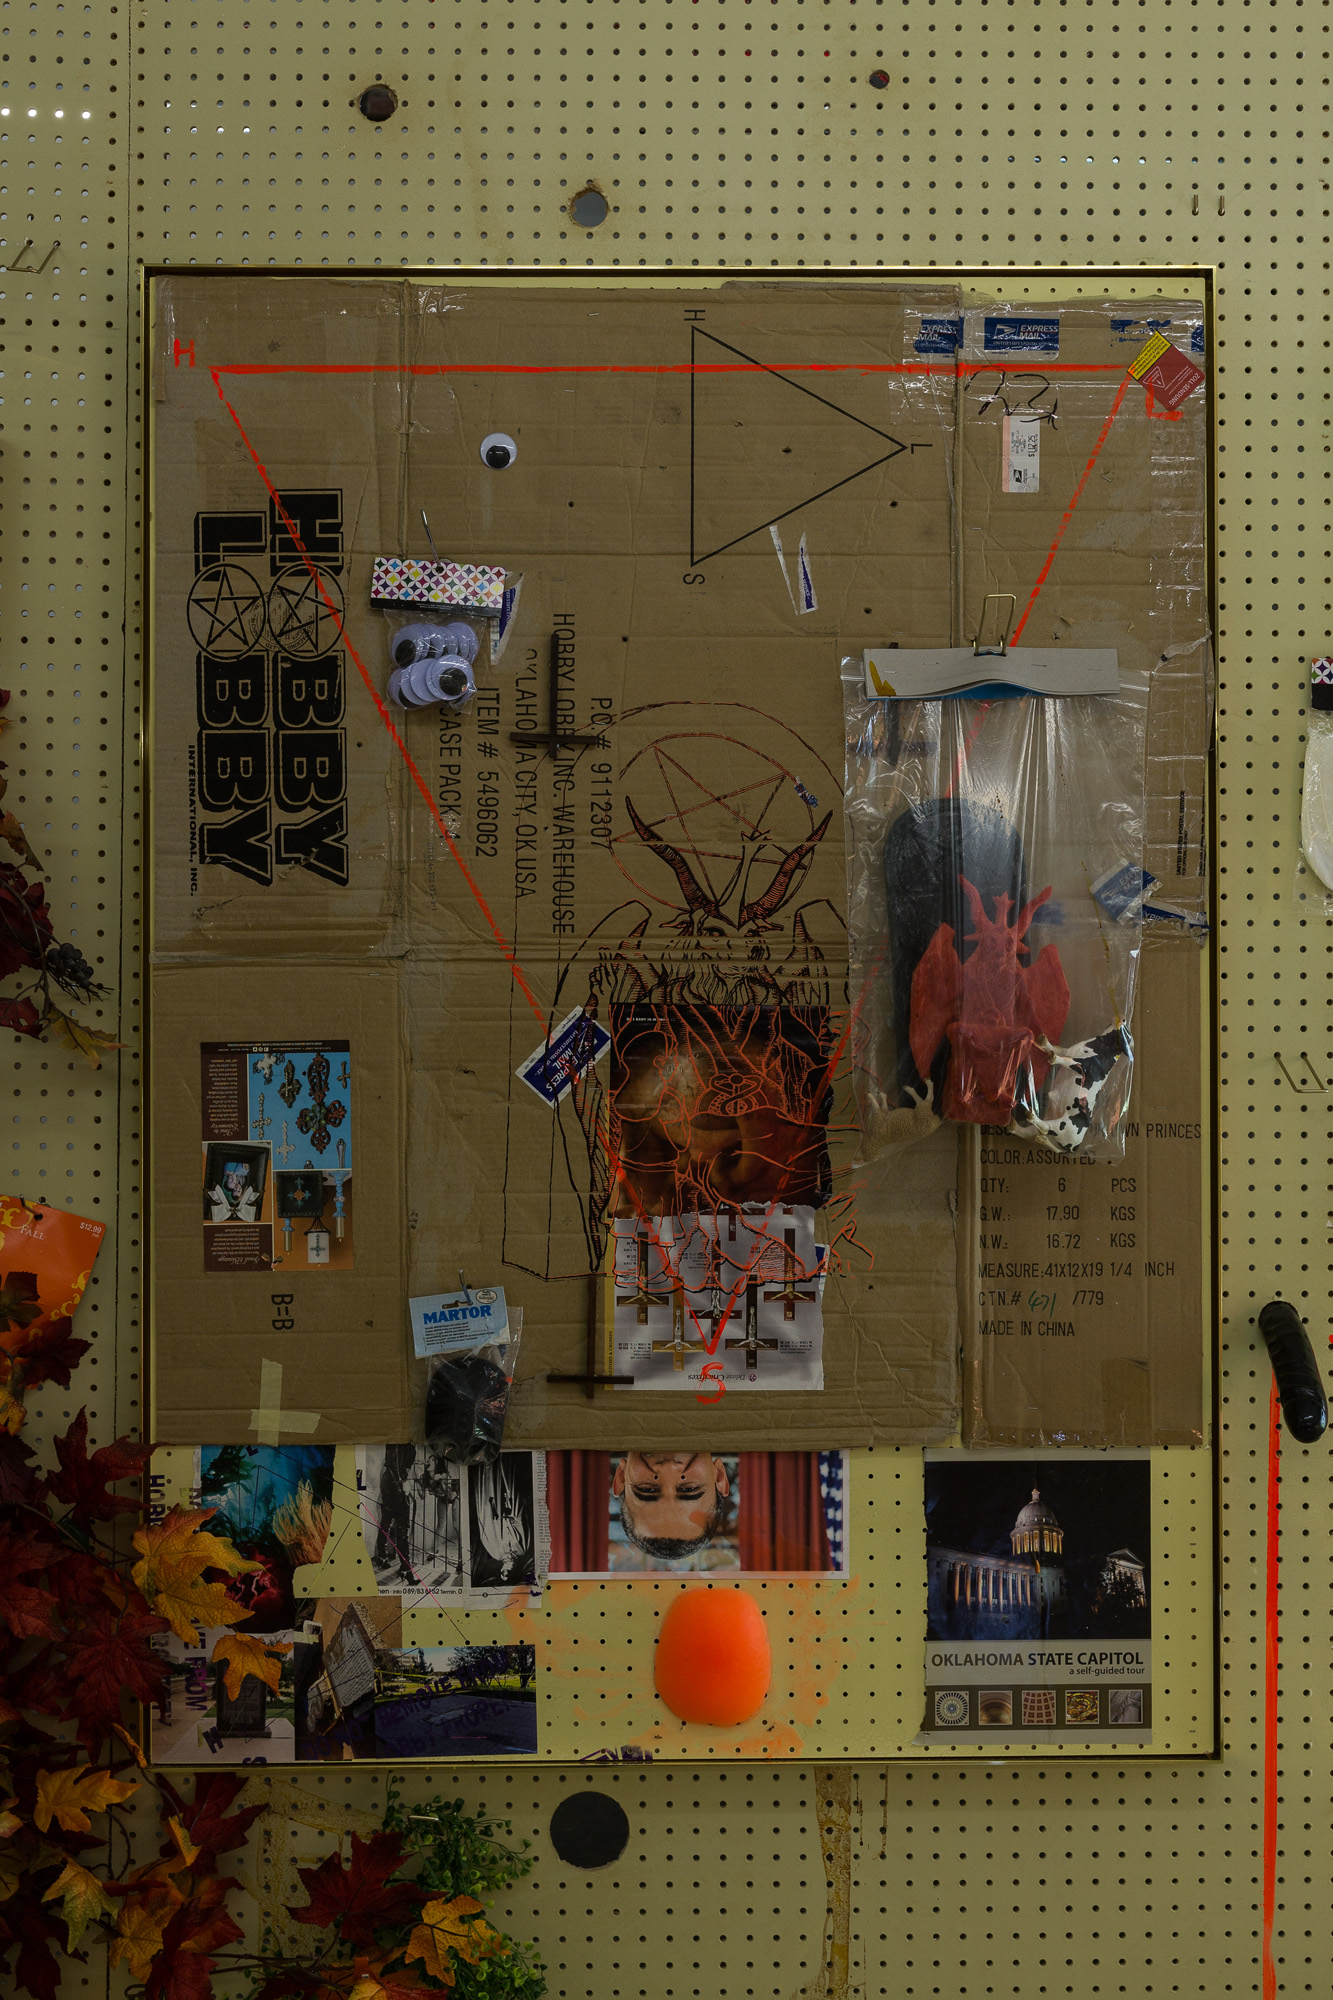 Stephen G. Rhodes Lobber IV, 2014 paint,collage elements on HL pegboard, baphomet satanic proposal toy kit, Hobby Lobby merchandise, wax scalp, Hobby Lobby box, OKC courthouse brochure, 10 commandments photos 141 x 102 cm 55 1/2 x 40 1/8 ins. The Eleventh Hobby , Stephen G. Rhodes